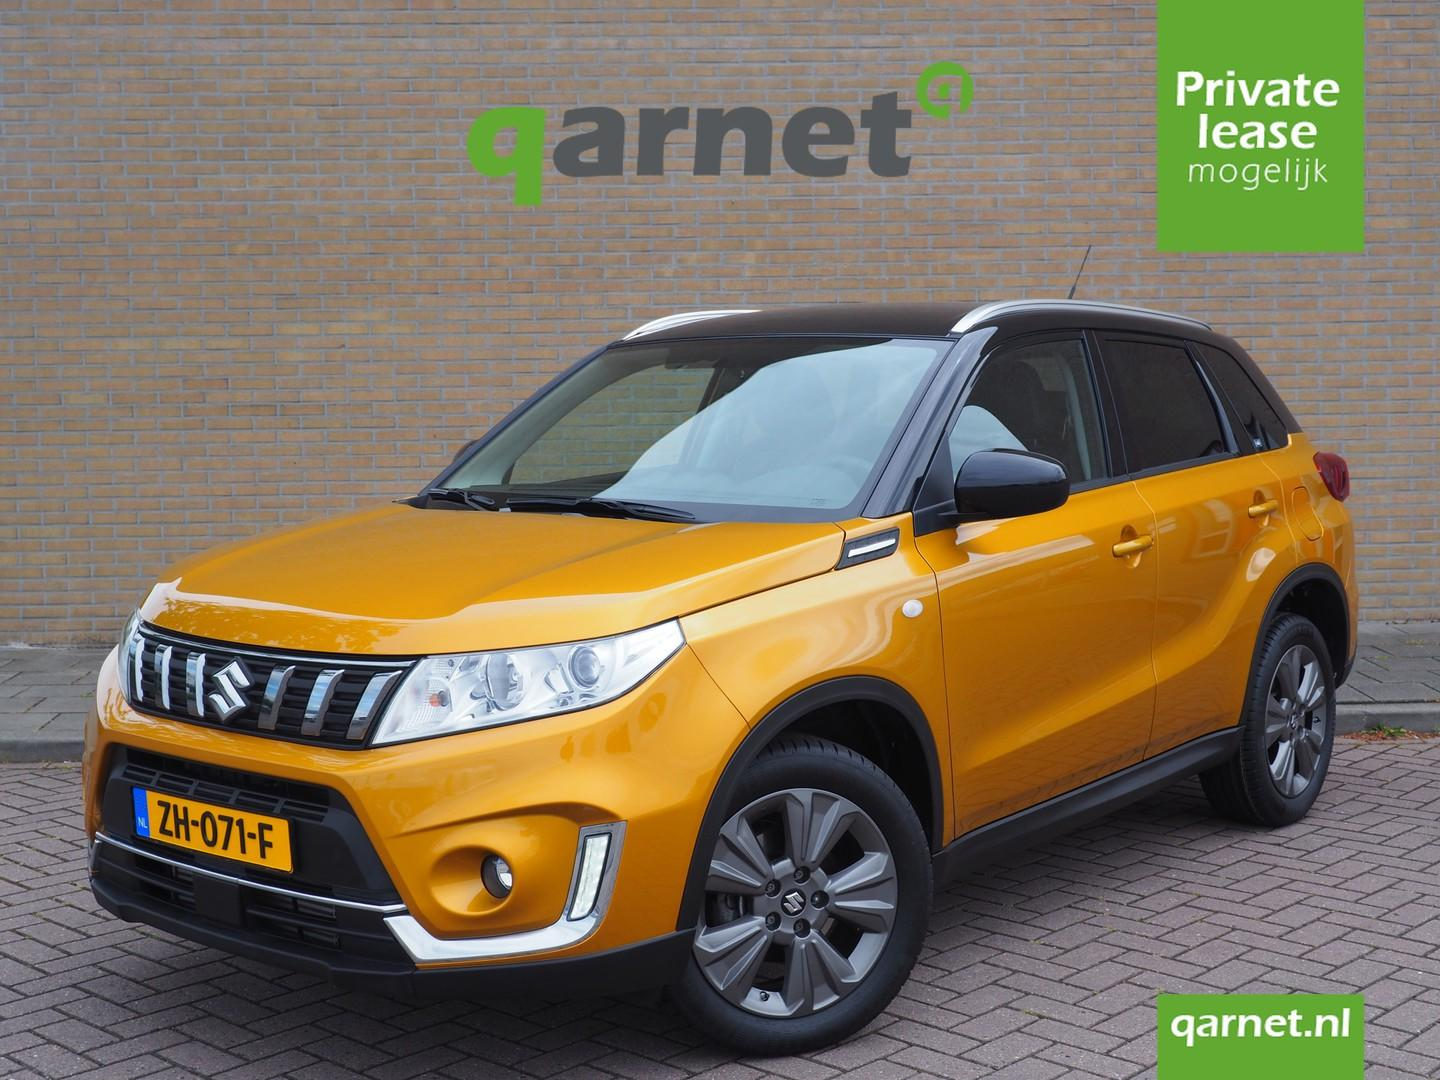 Suzuki Vitara 1.4 boosterjet select private lease 48 mnd 10.000km p/j